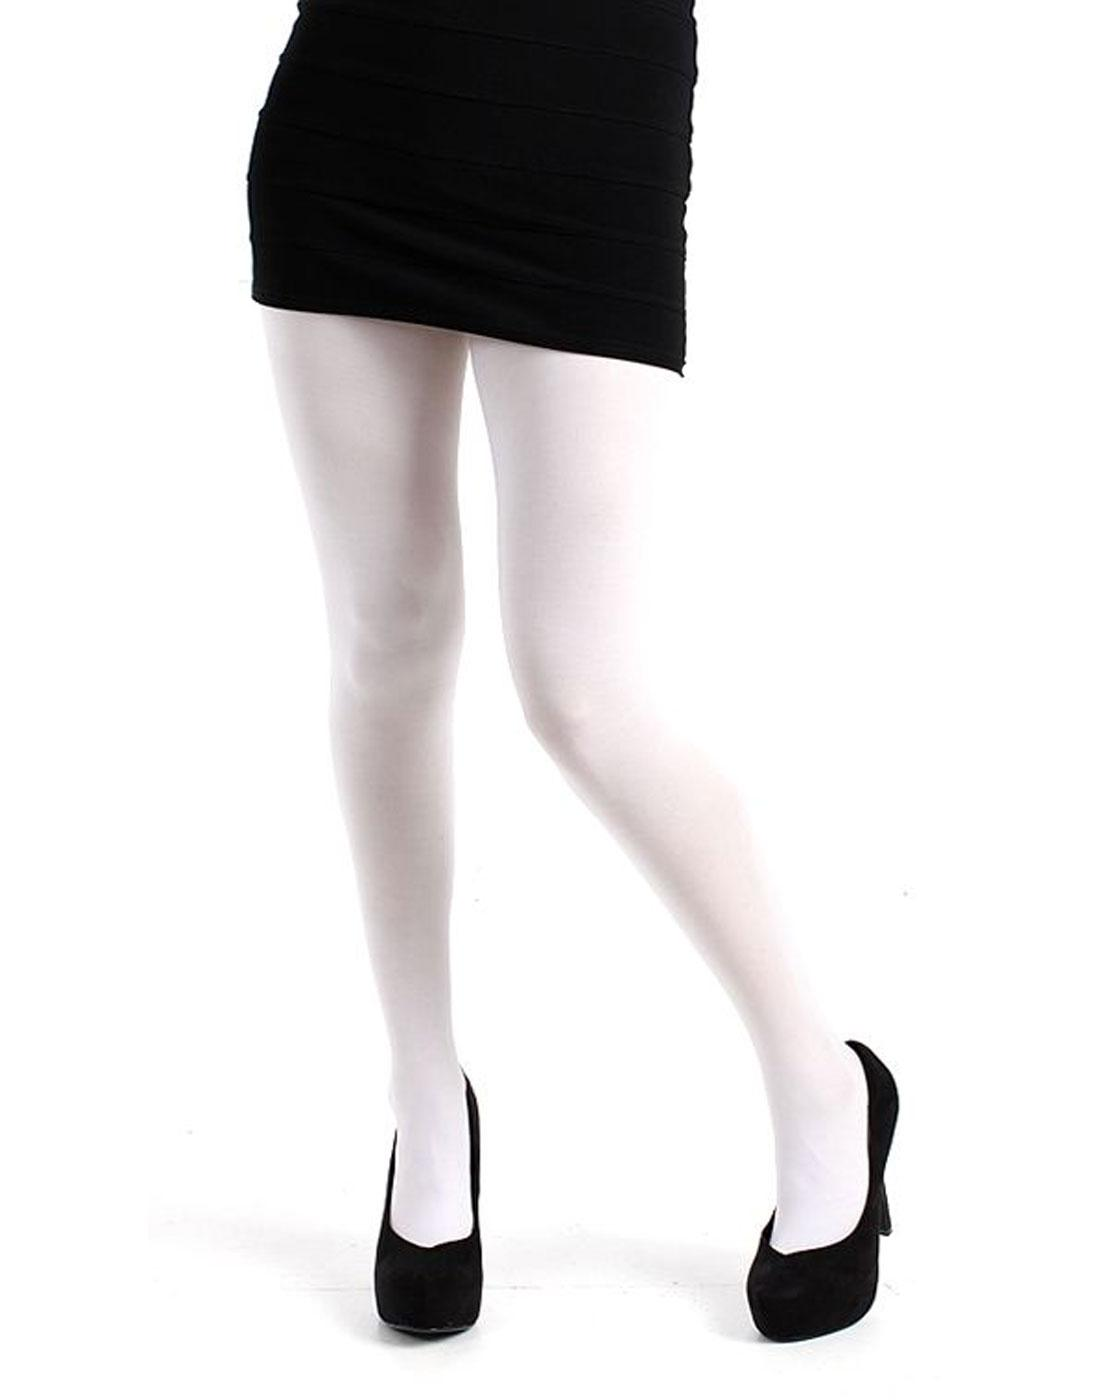 + PAMELA MANN 80 Denier Opaque Tights in White